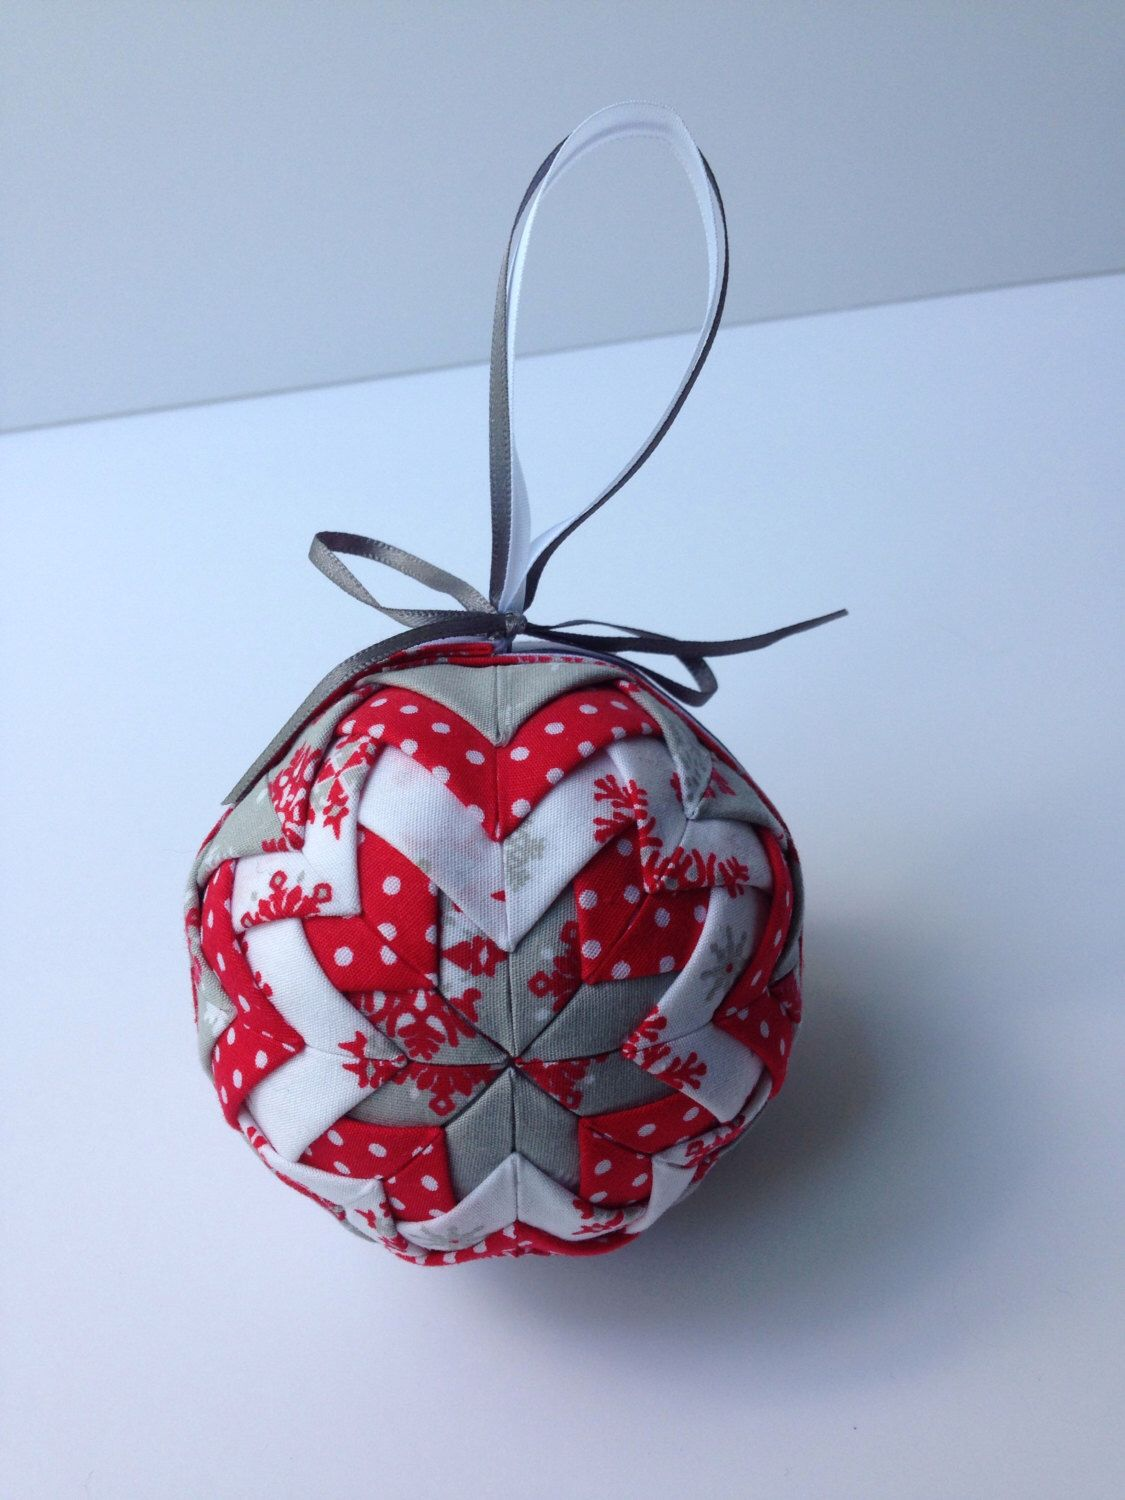 How To Decorate Polystyrene Balls Red And Grey Quilted Christmas Bauble  Baubles  Pinterest